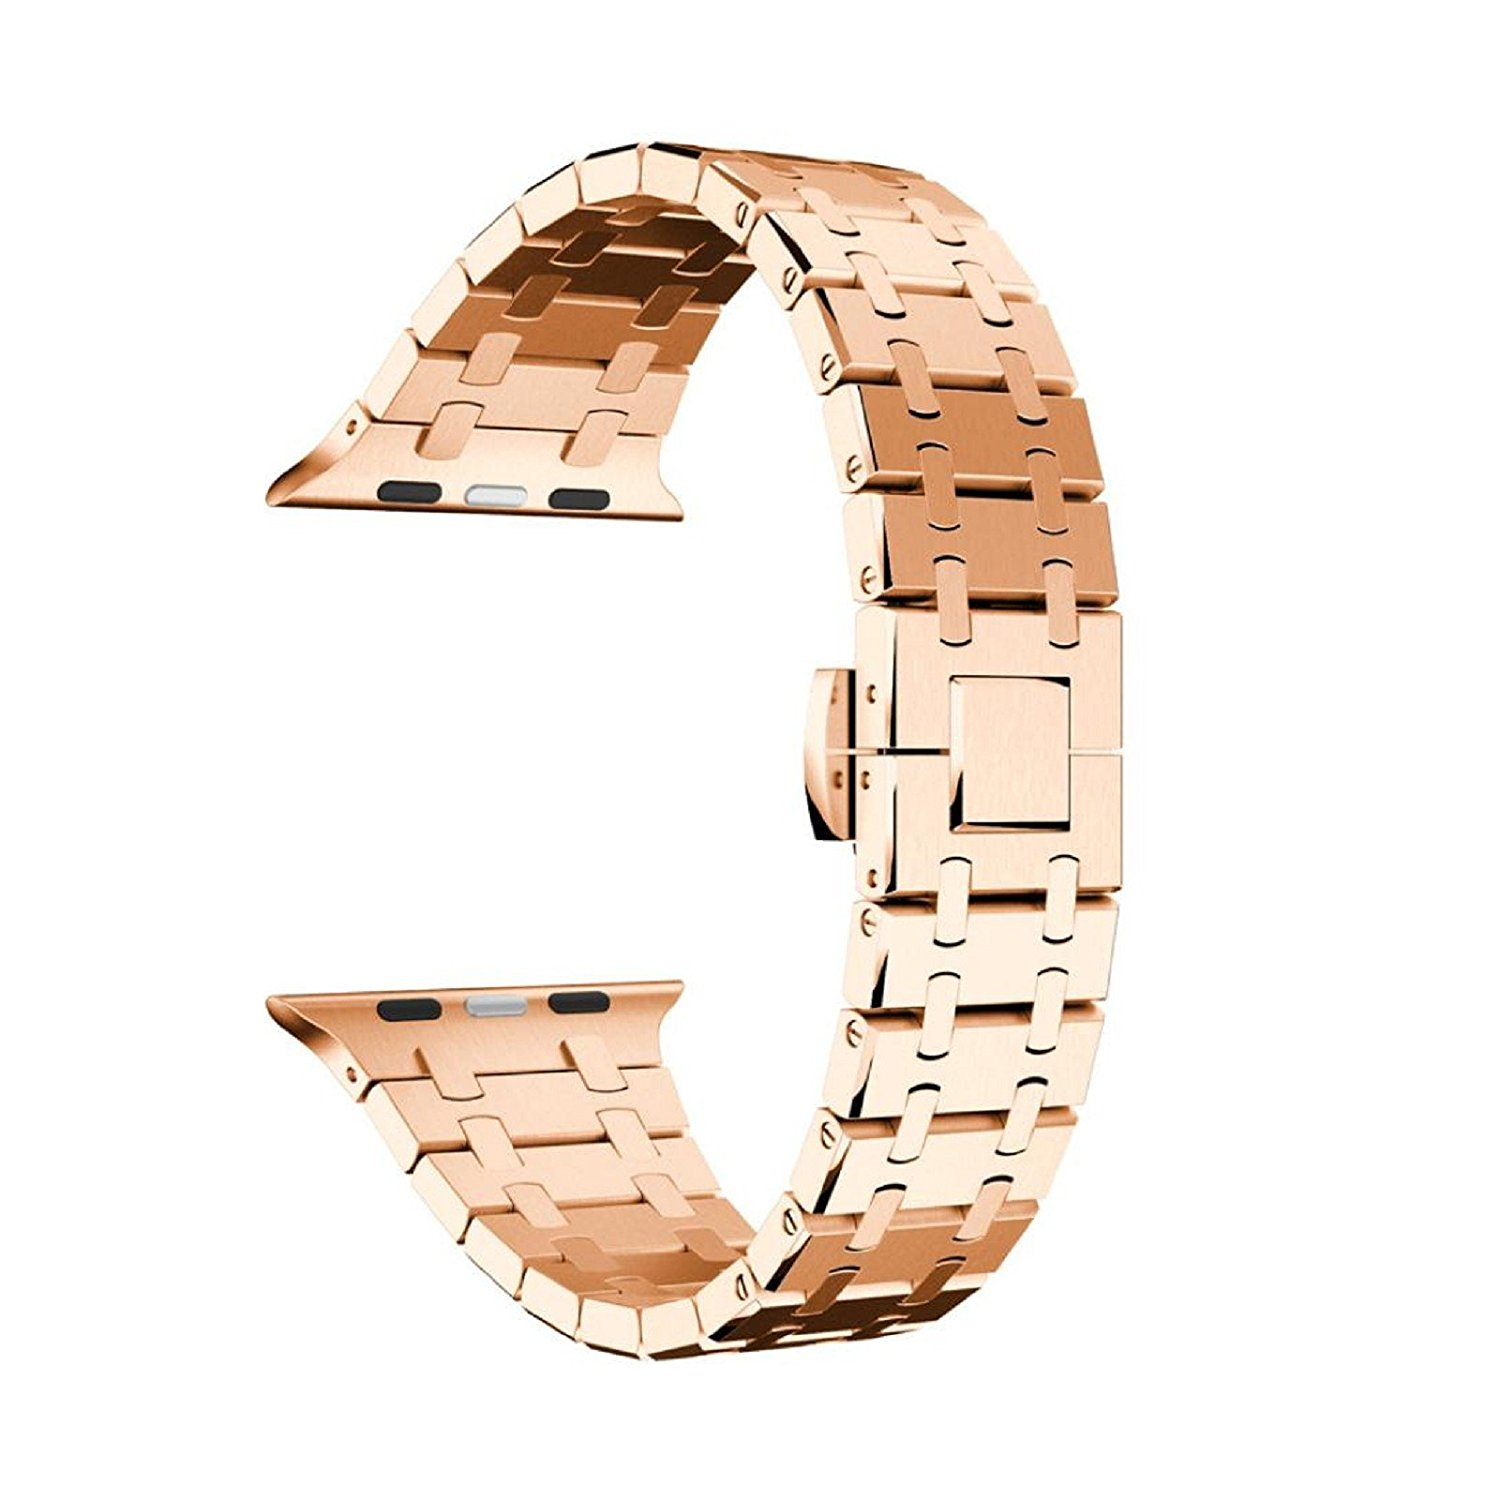 Owill Durable Comfortable Genuine Stainless Steel Watch Bracelet Band Strap For Apple Watch Series 1/2 38MM Watch, Fits Wrist 135-195mm (Rose Gold)